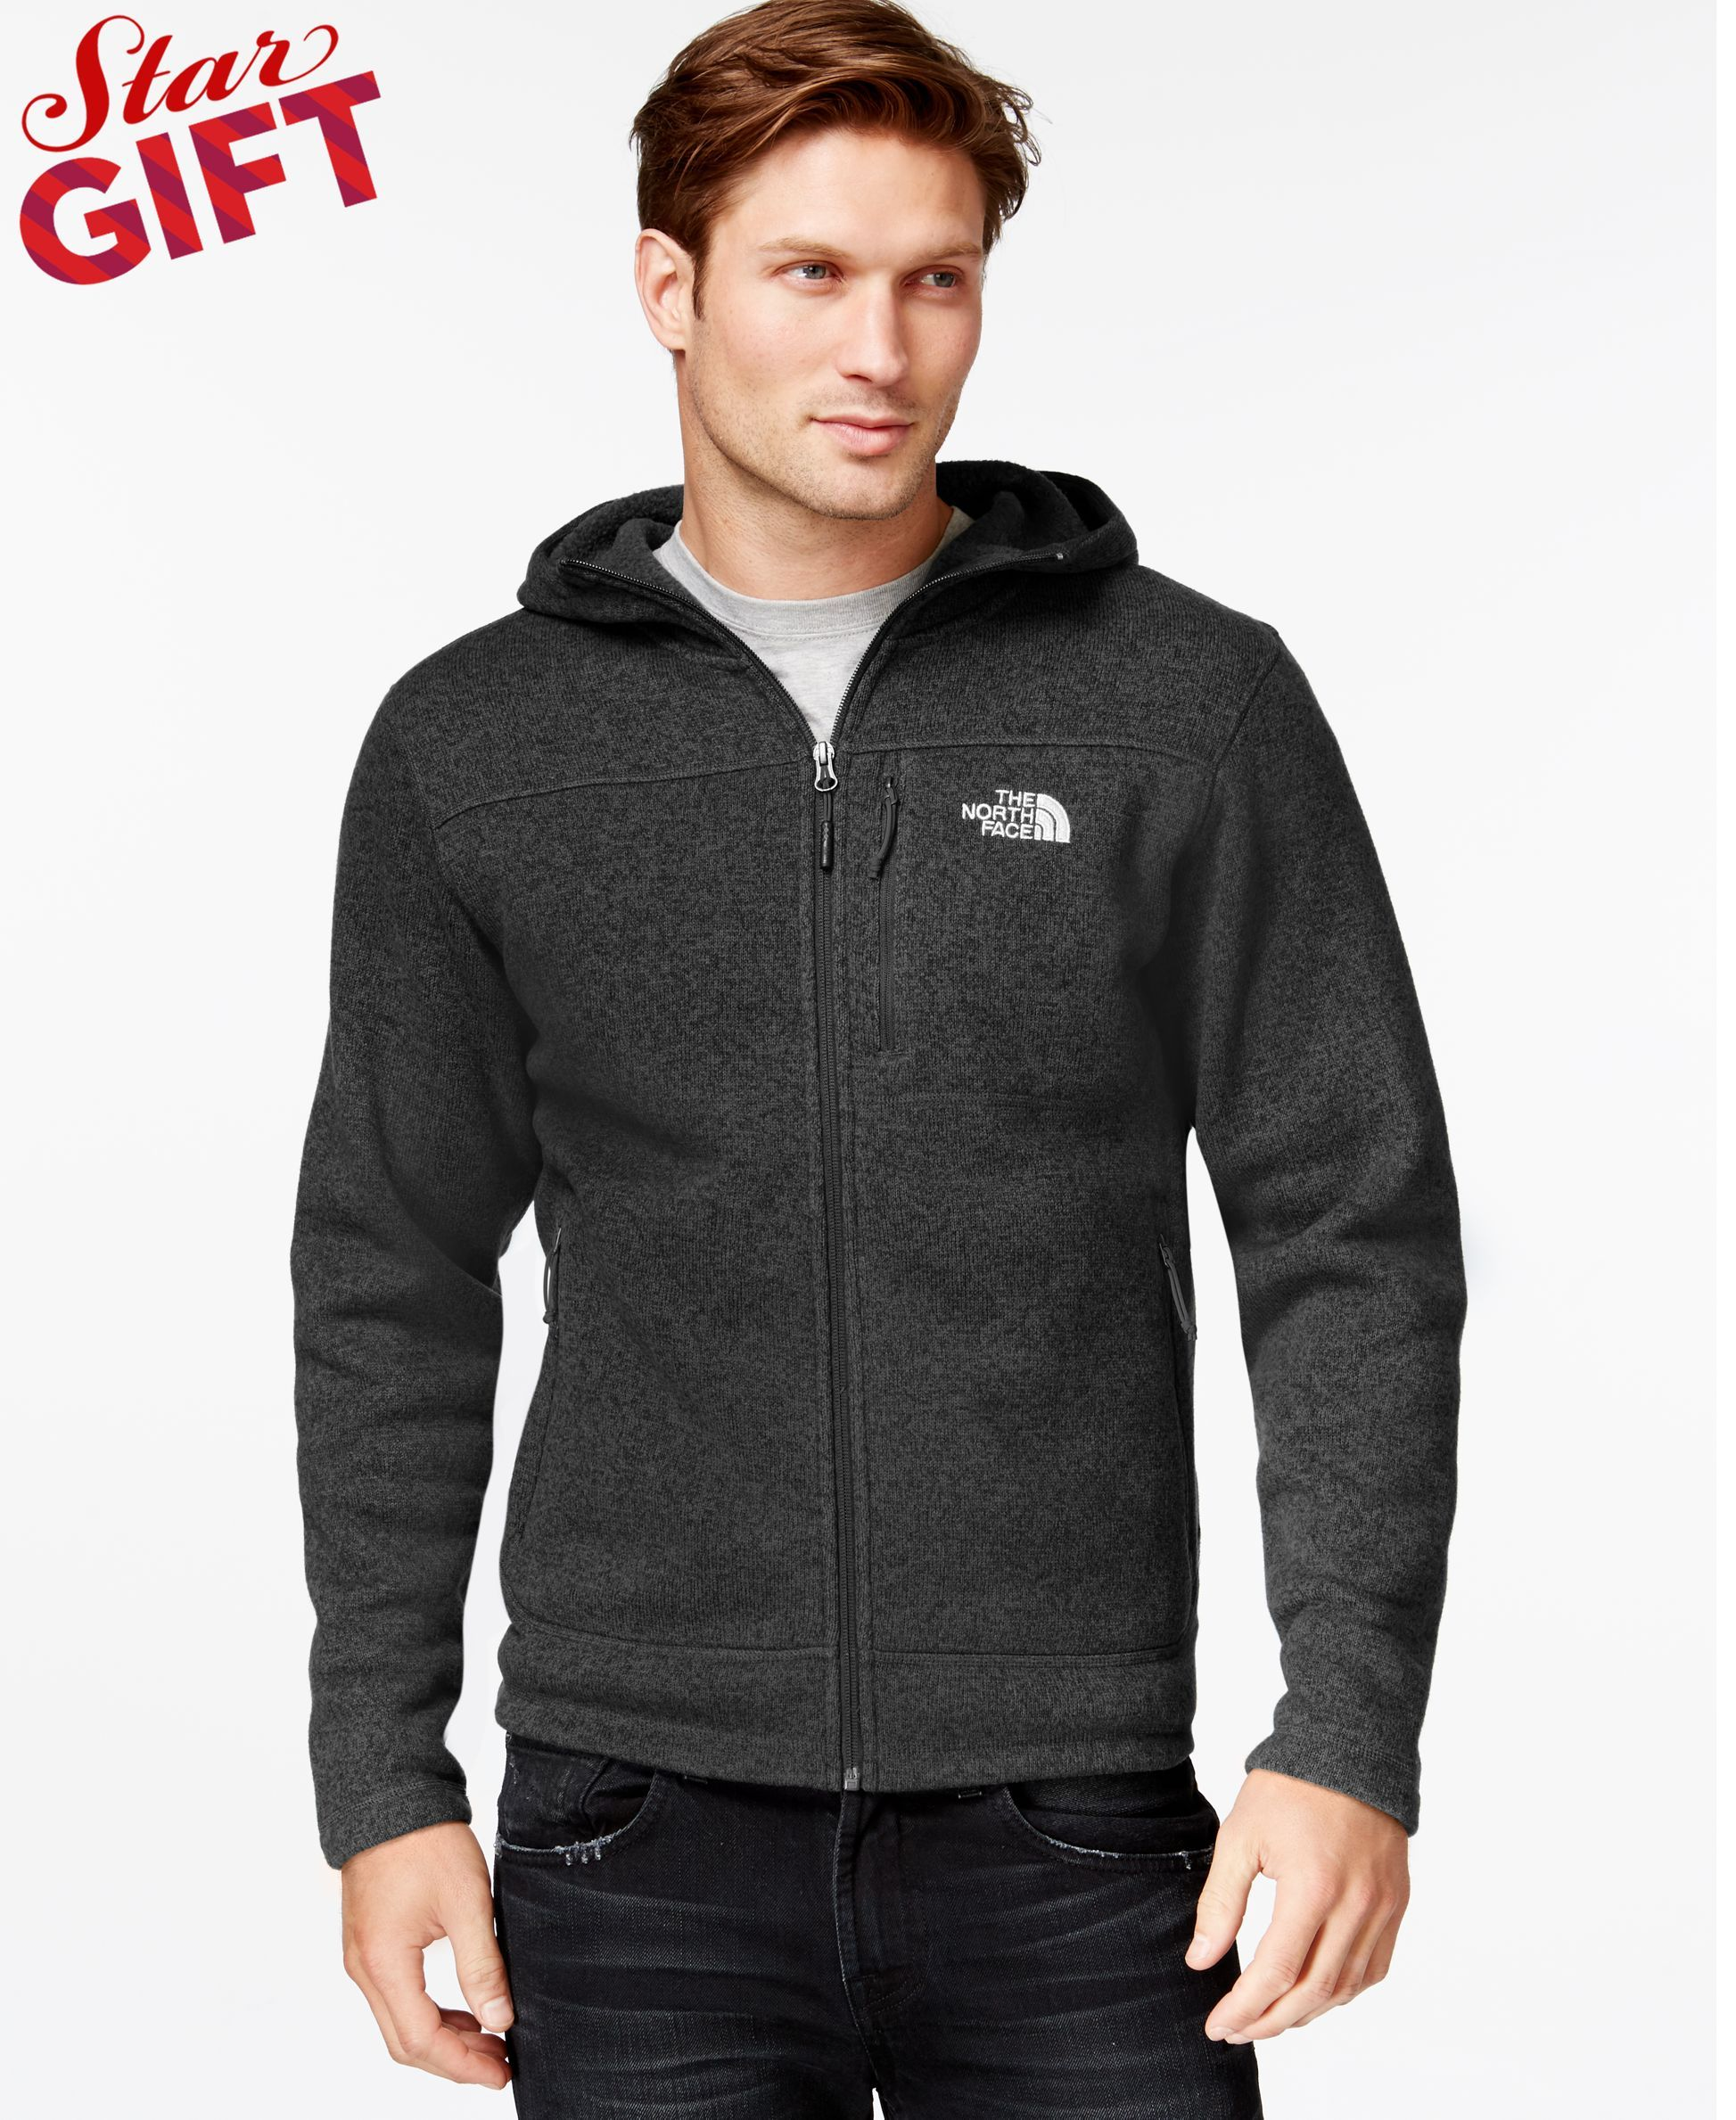 7515a8284b1d The North Face Gordon Lyons Zip-Front Hoodie